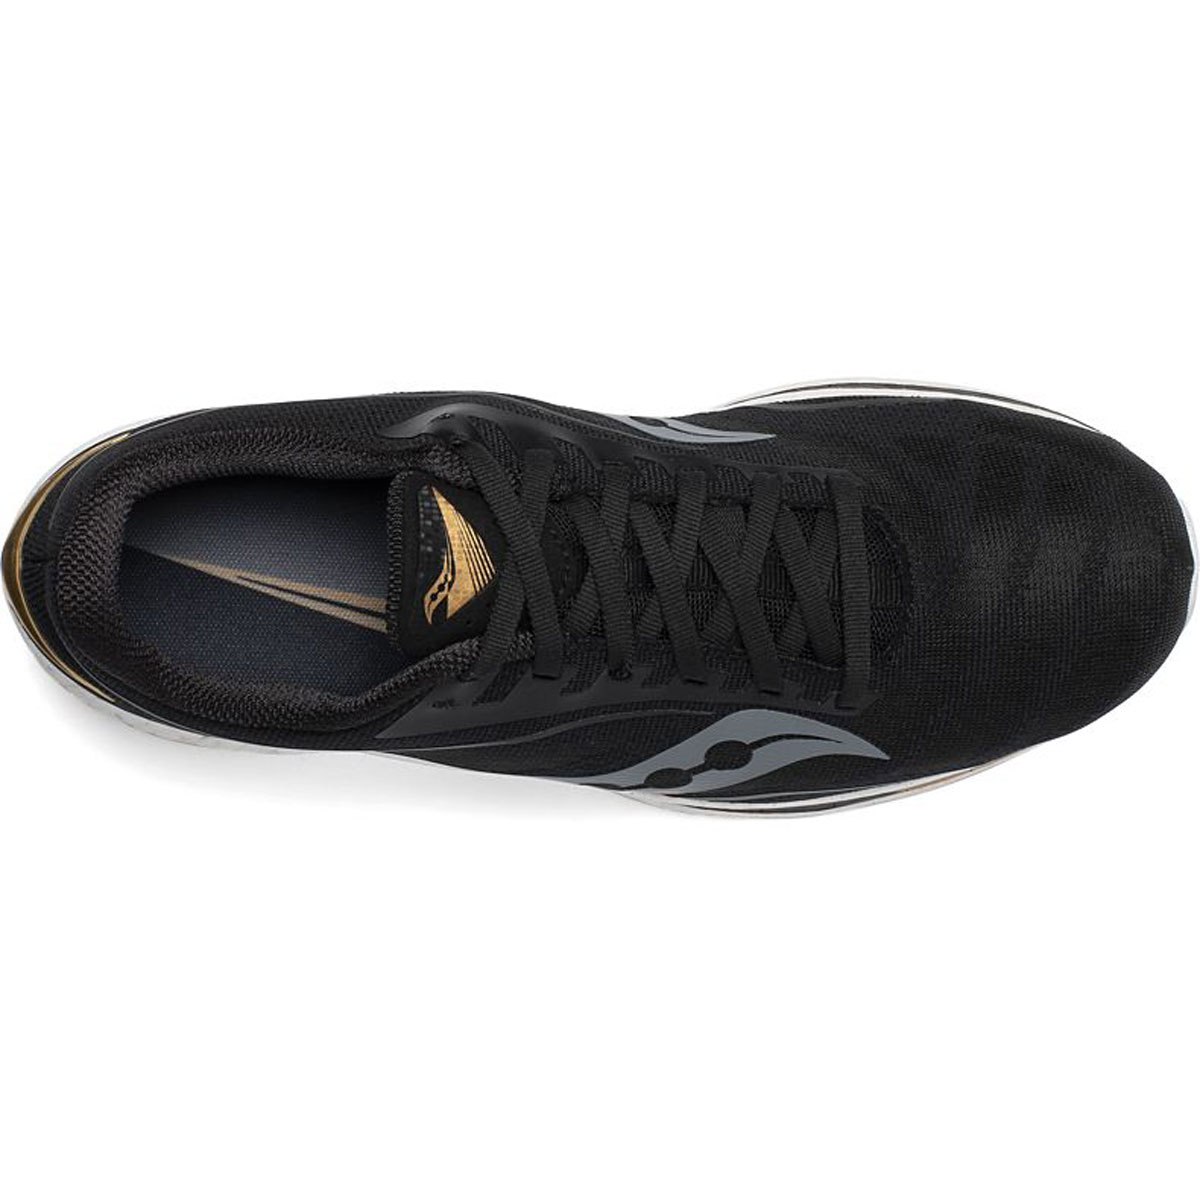 Men's Saucony Endorphin Speed Running Shoe - Color: Black/Gold - Size: 7 - Width: Regular, Black/Gold, large, image 3